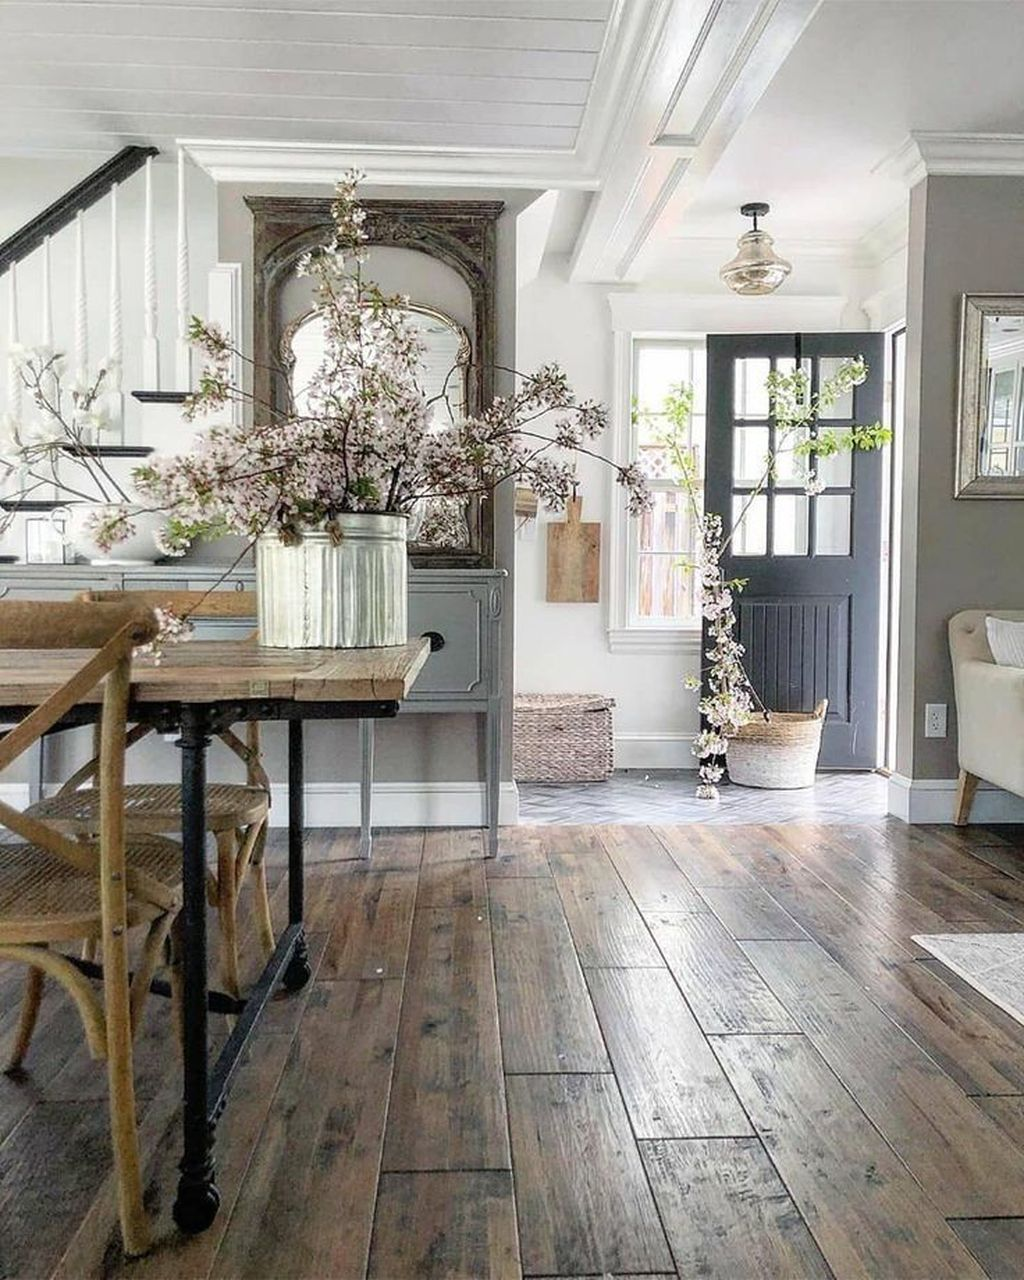 The Best Ideas To Decorate Interior Design With Farmhouse Style 17